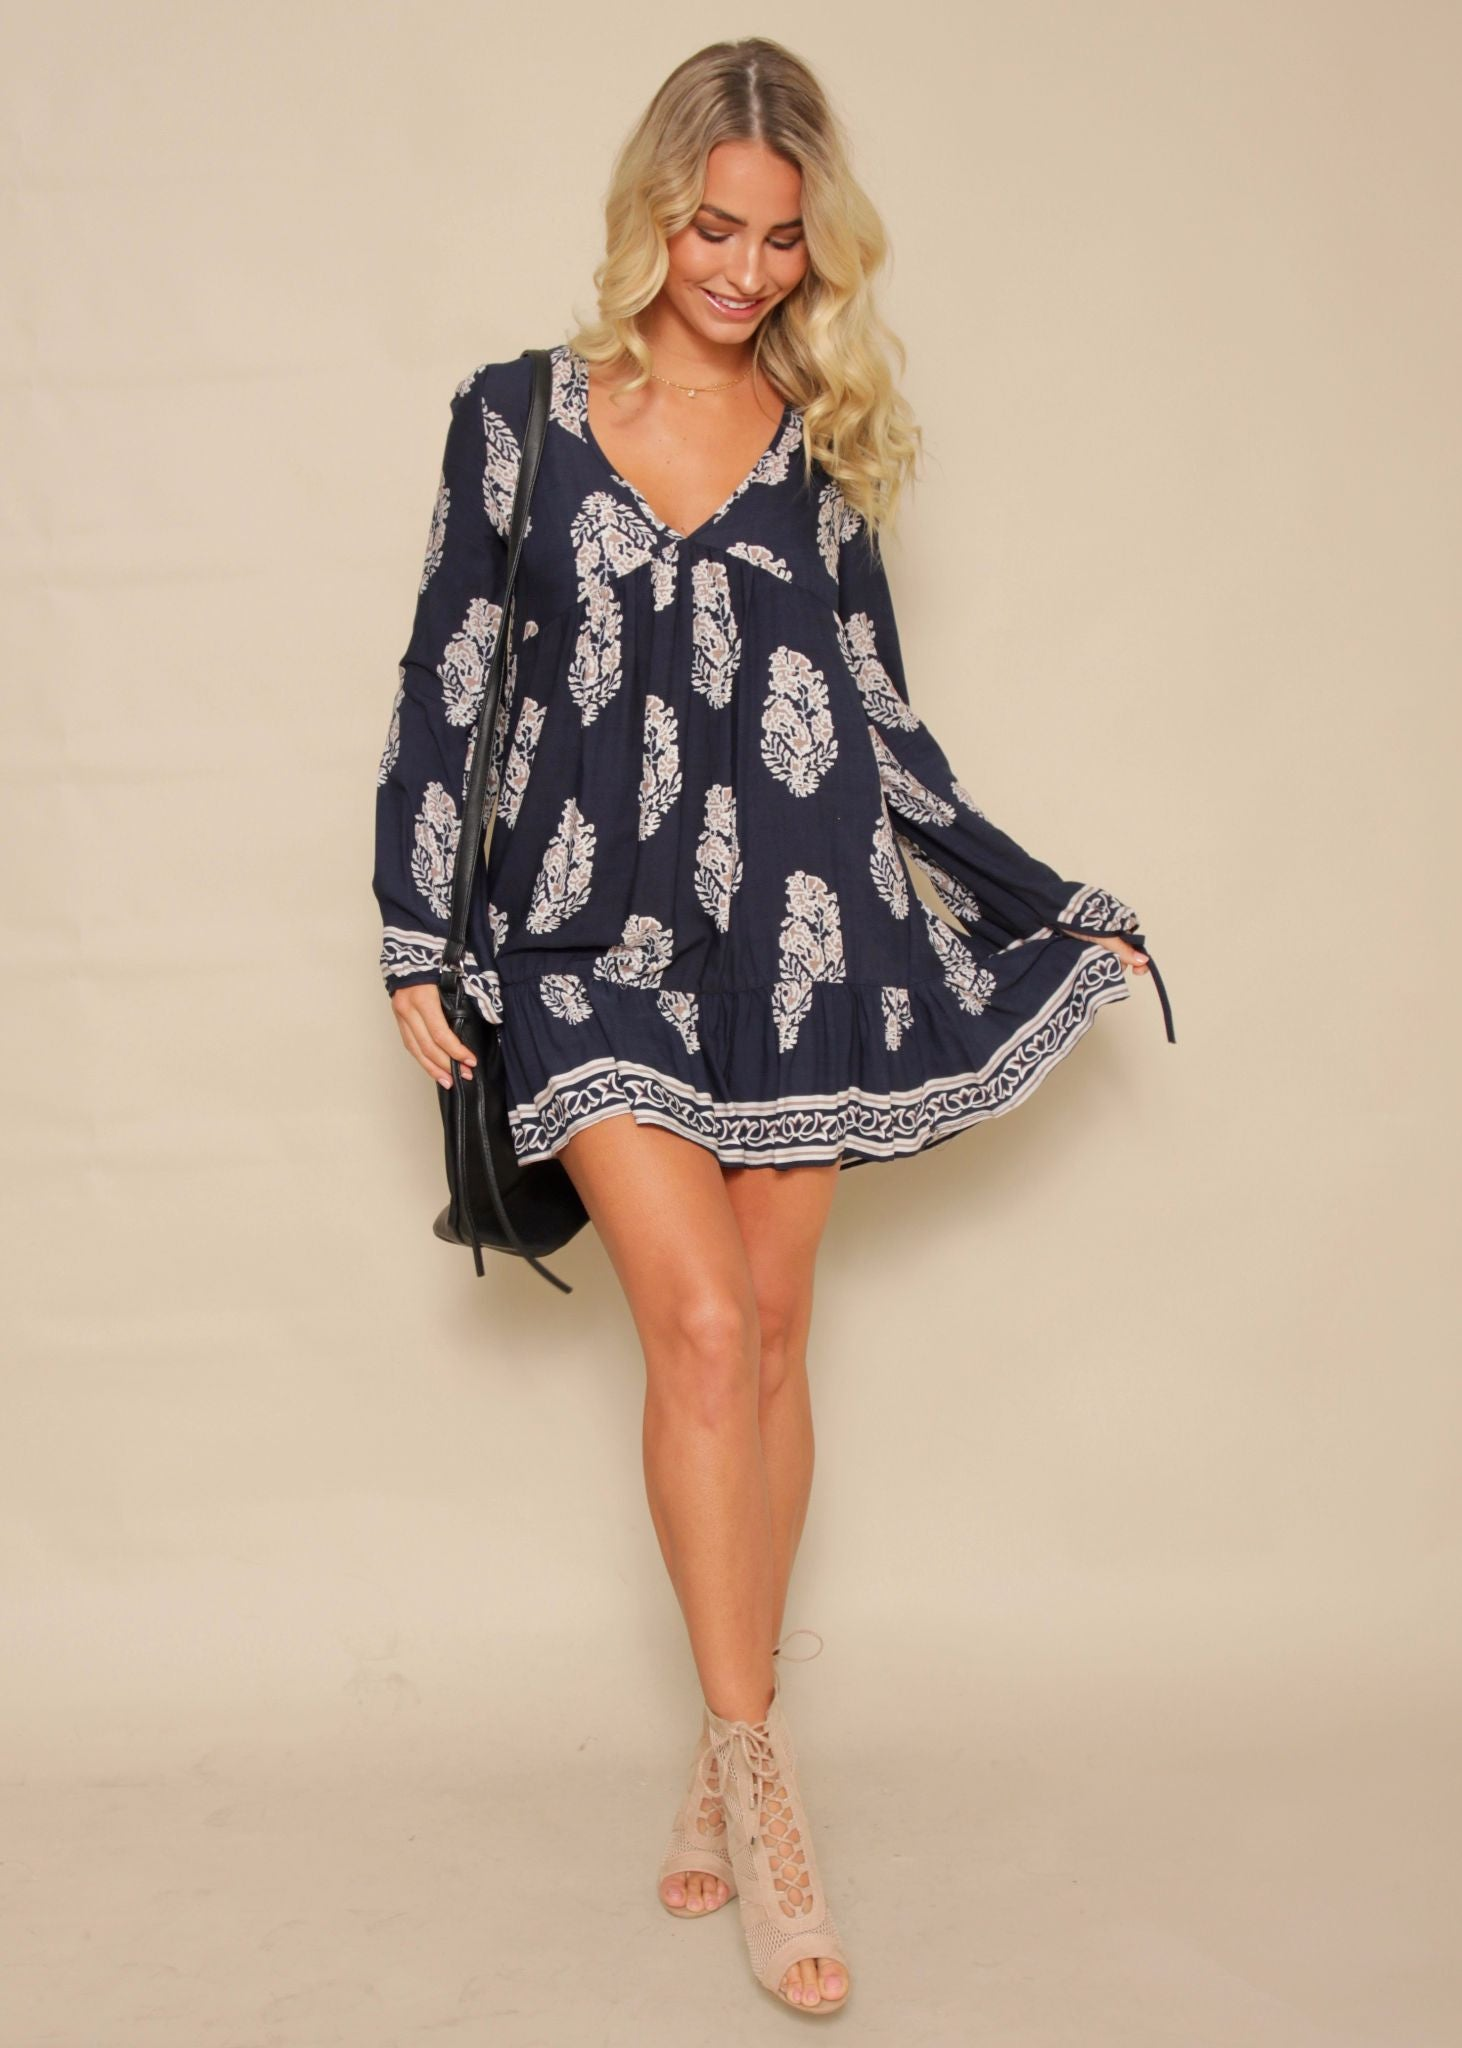 Simple Life Swing Dress - Navy